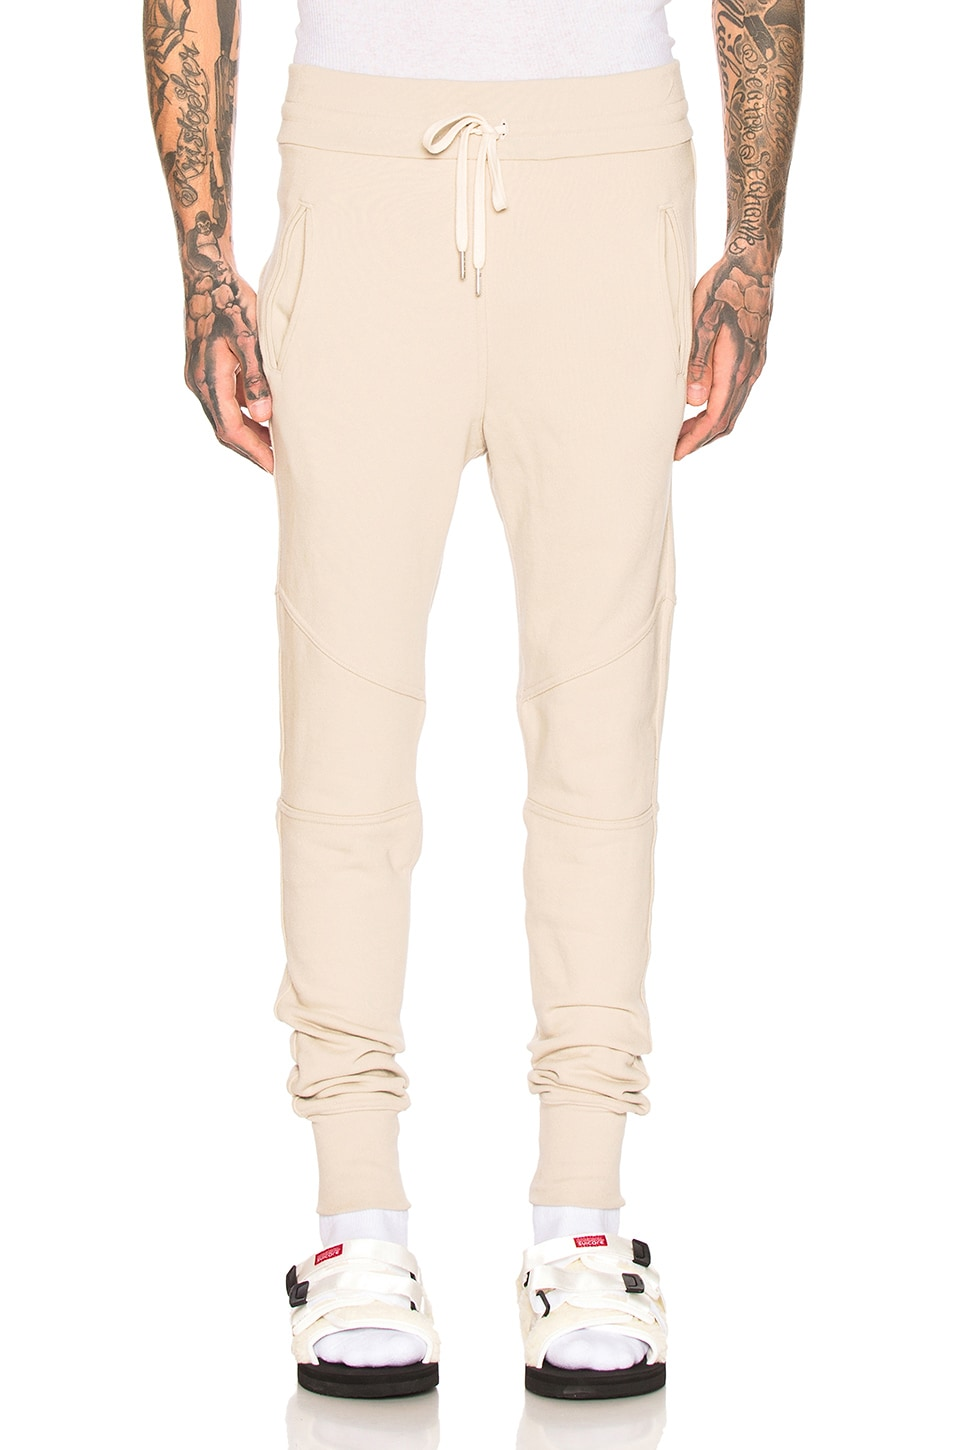 JOHN ELLIOTT PANTALON SWEAT ESCOBAR